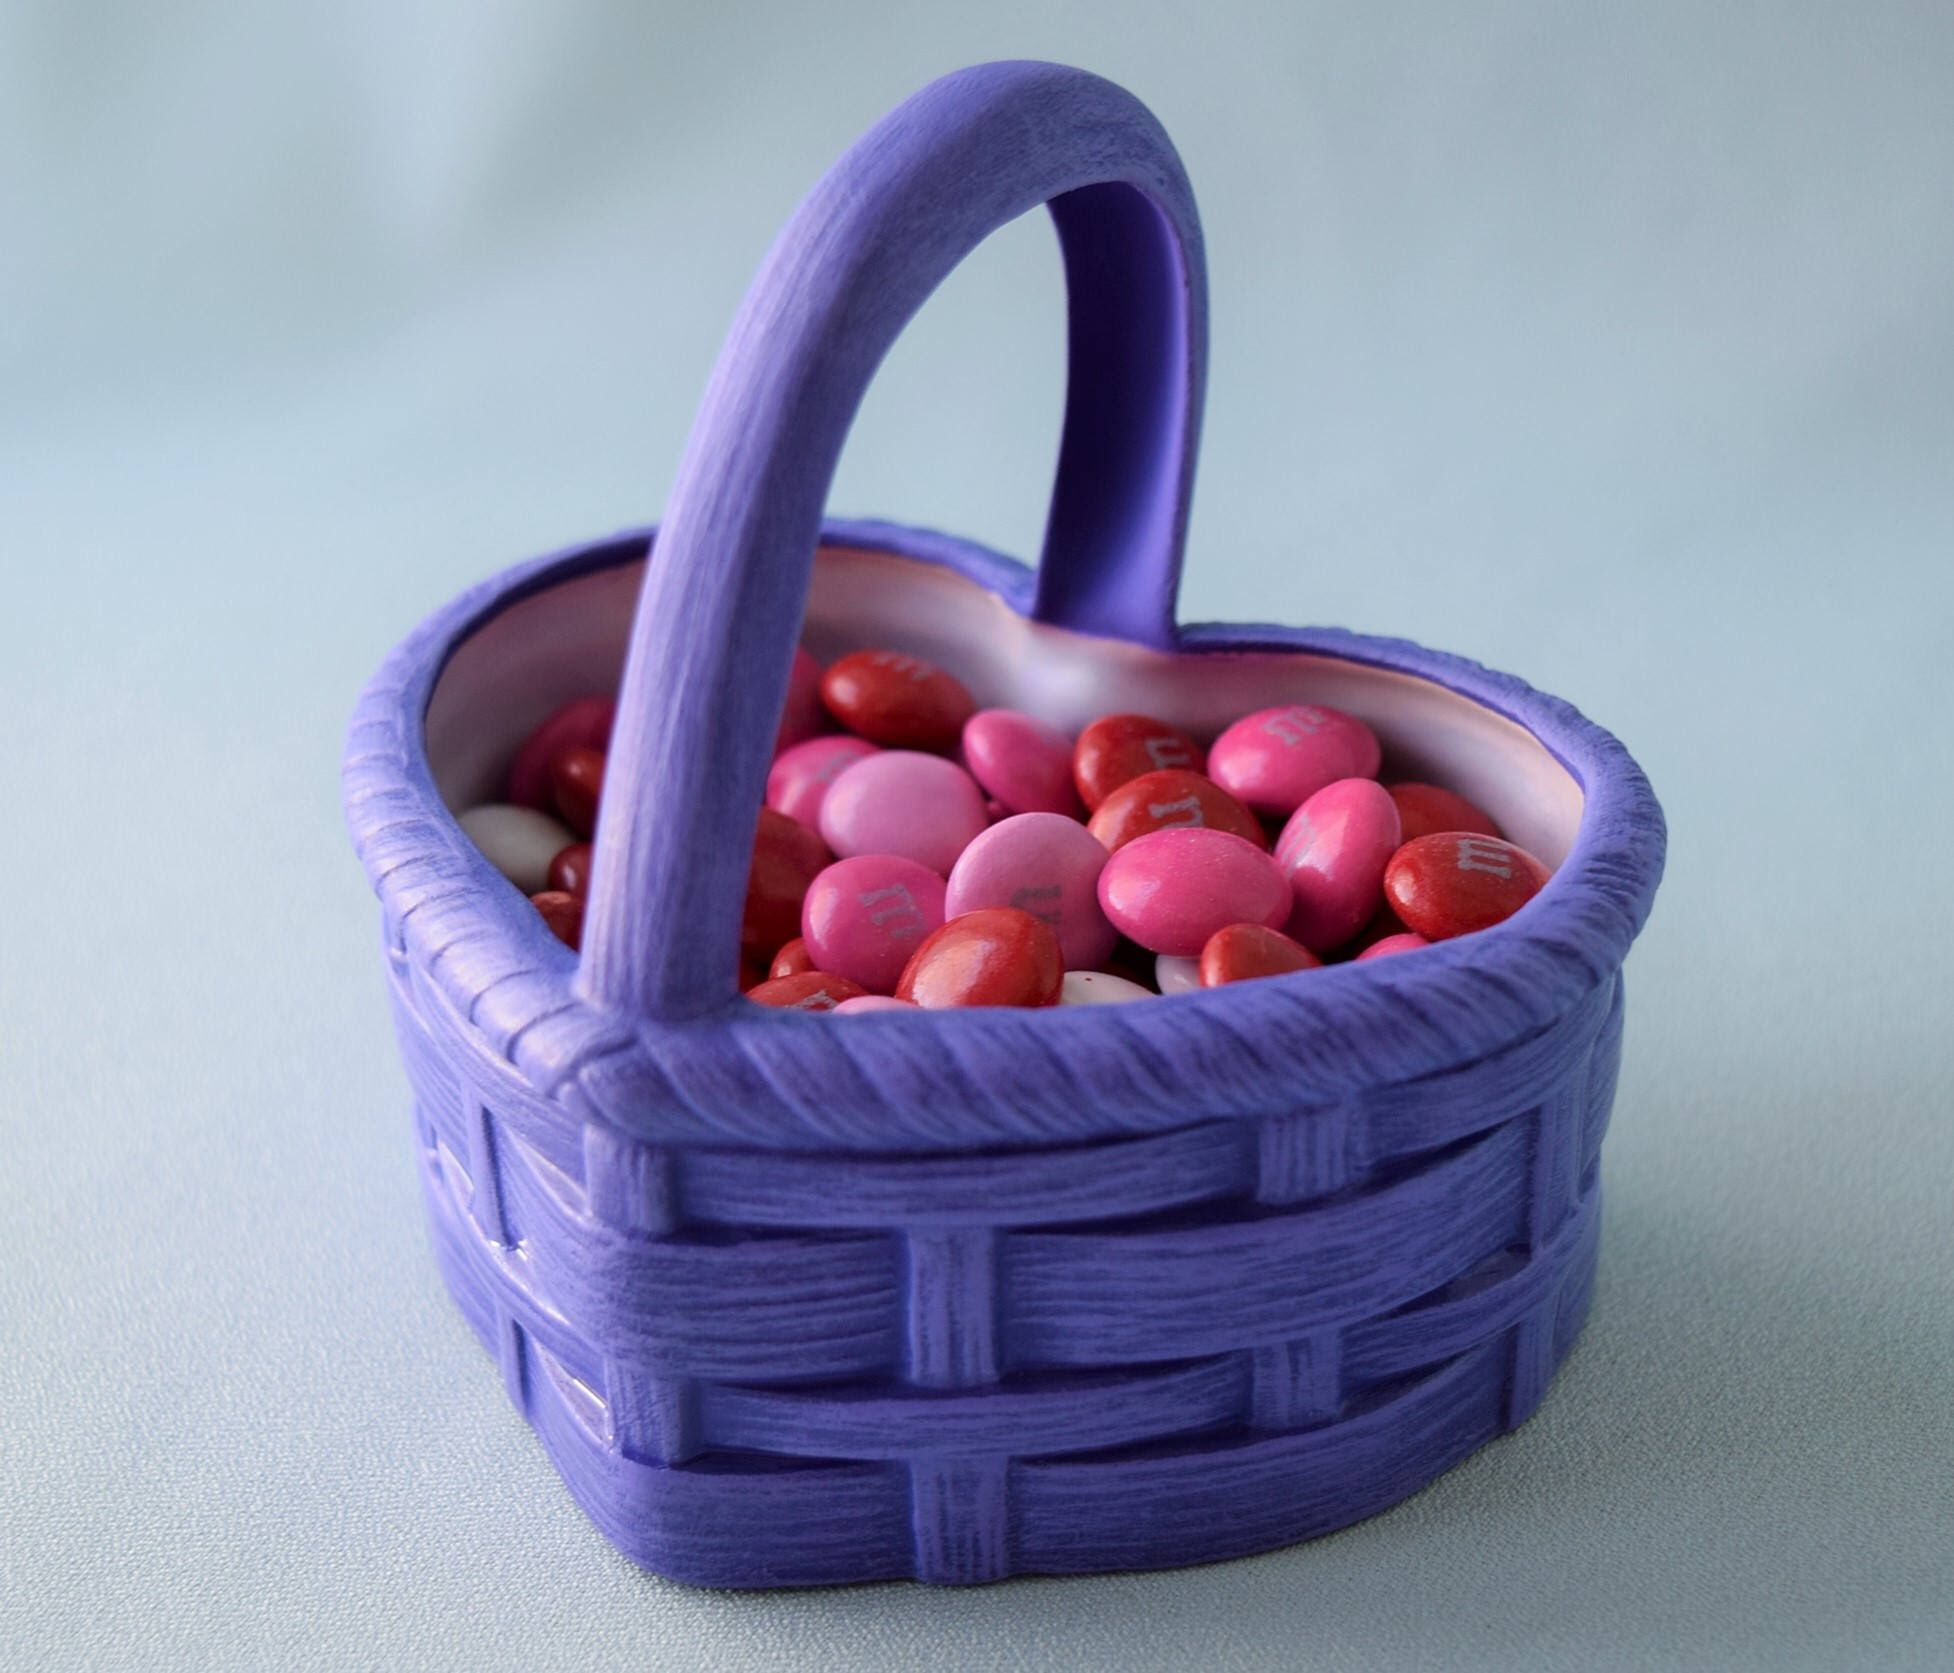 Heart basket candy dish ceramic basket valentines gift easter heart basket candy dish ceramic basket valentines gift easter gift gift for her spring decor purple heart dish ready to ship by teres negle Choice Image